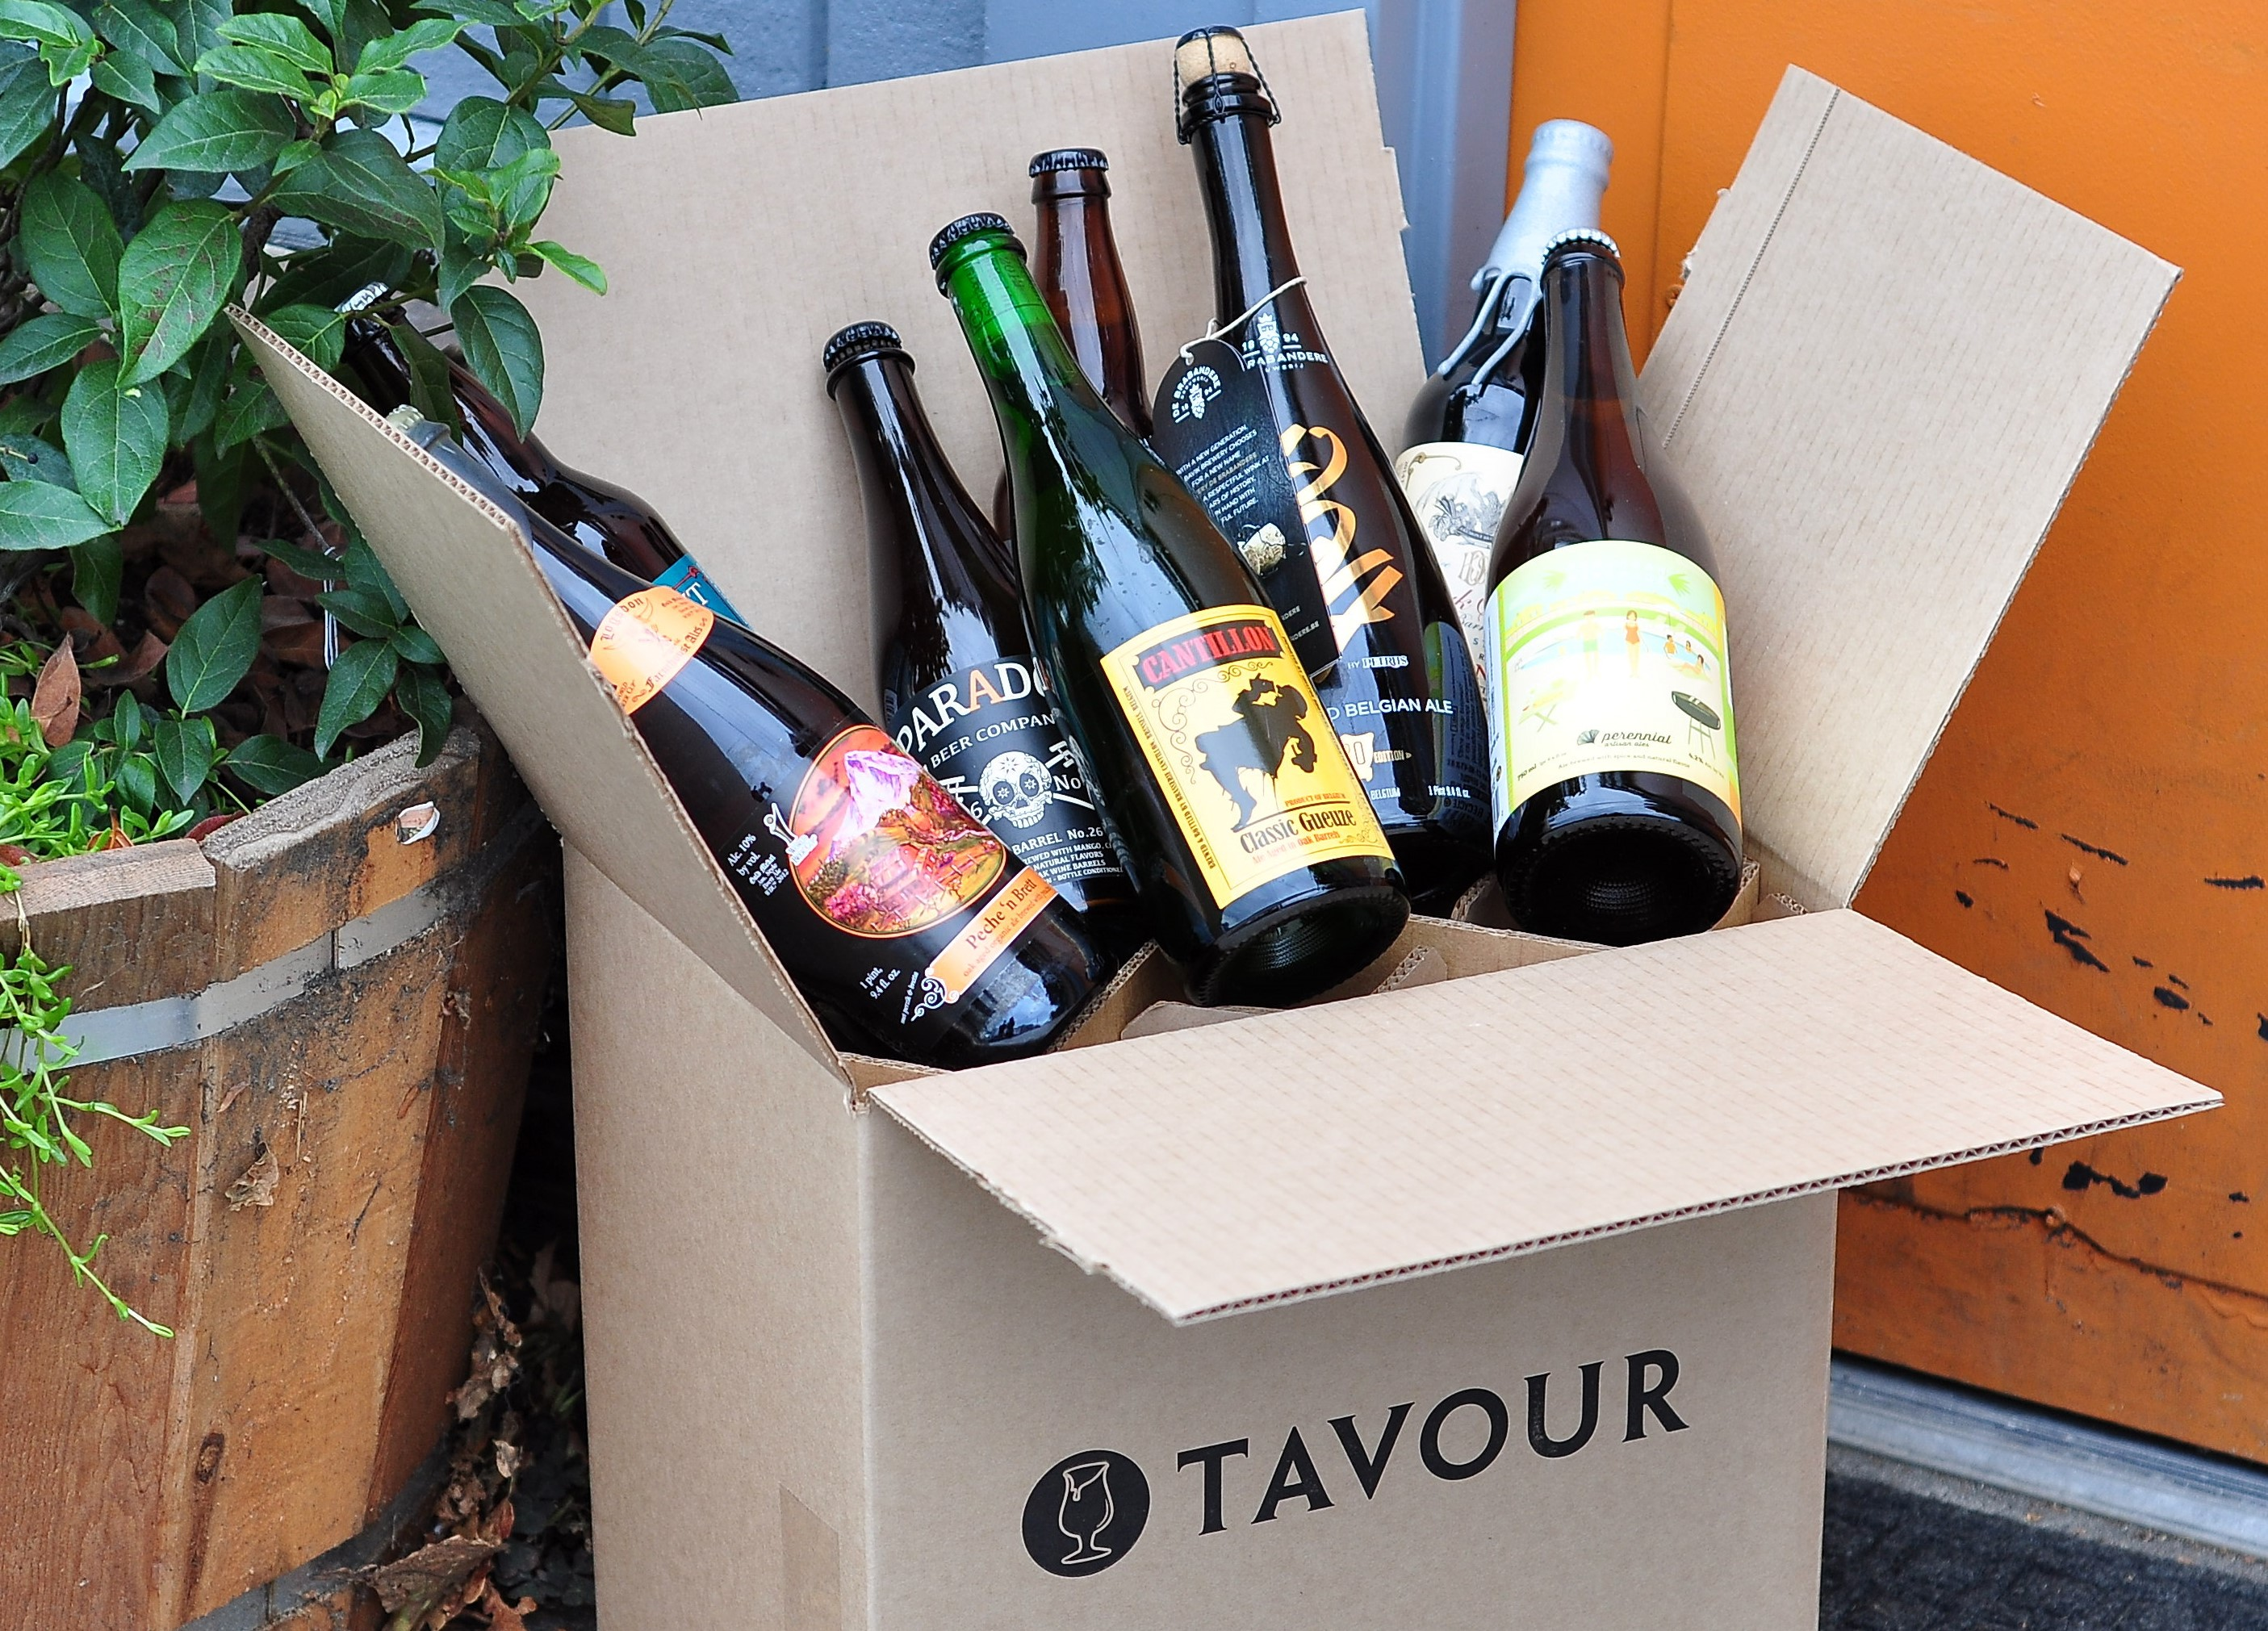 A box of beers you can get shipped directly to your home from Tavour.com